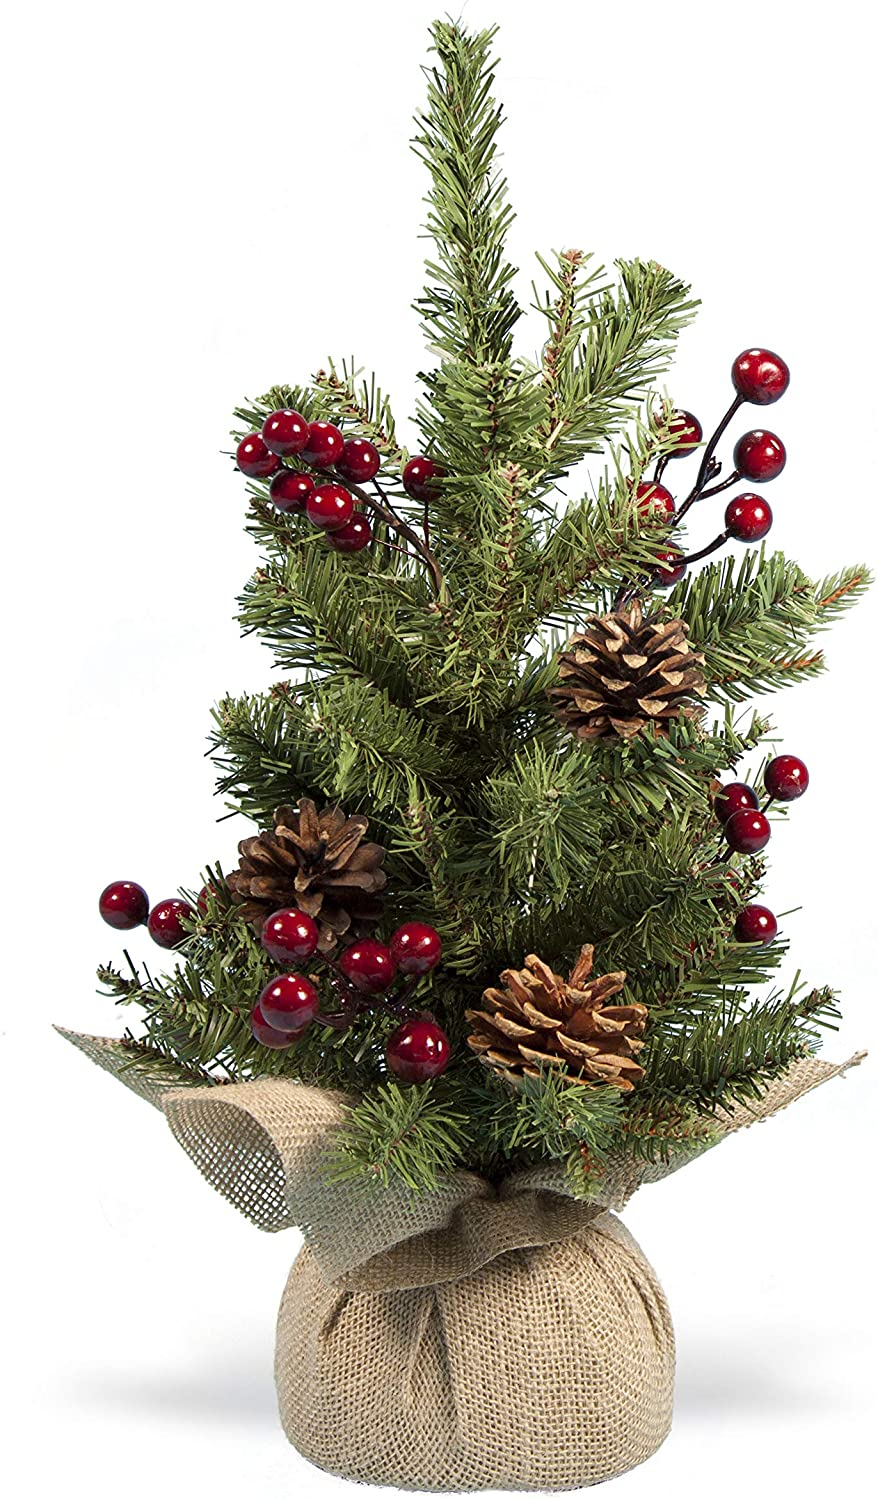 Holiday Essentials Tabletop Christmas Tree with Pine Cones and Red Berries - 17